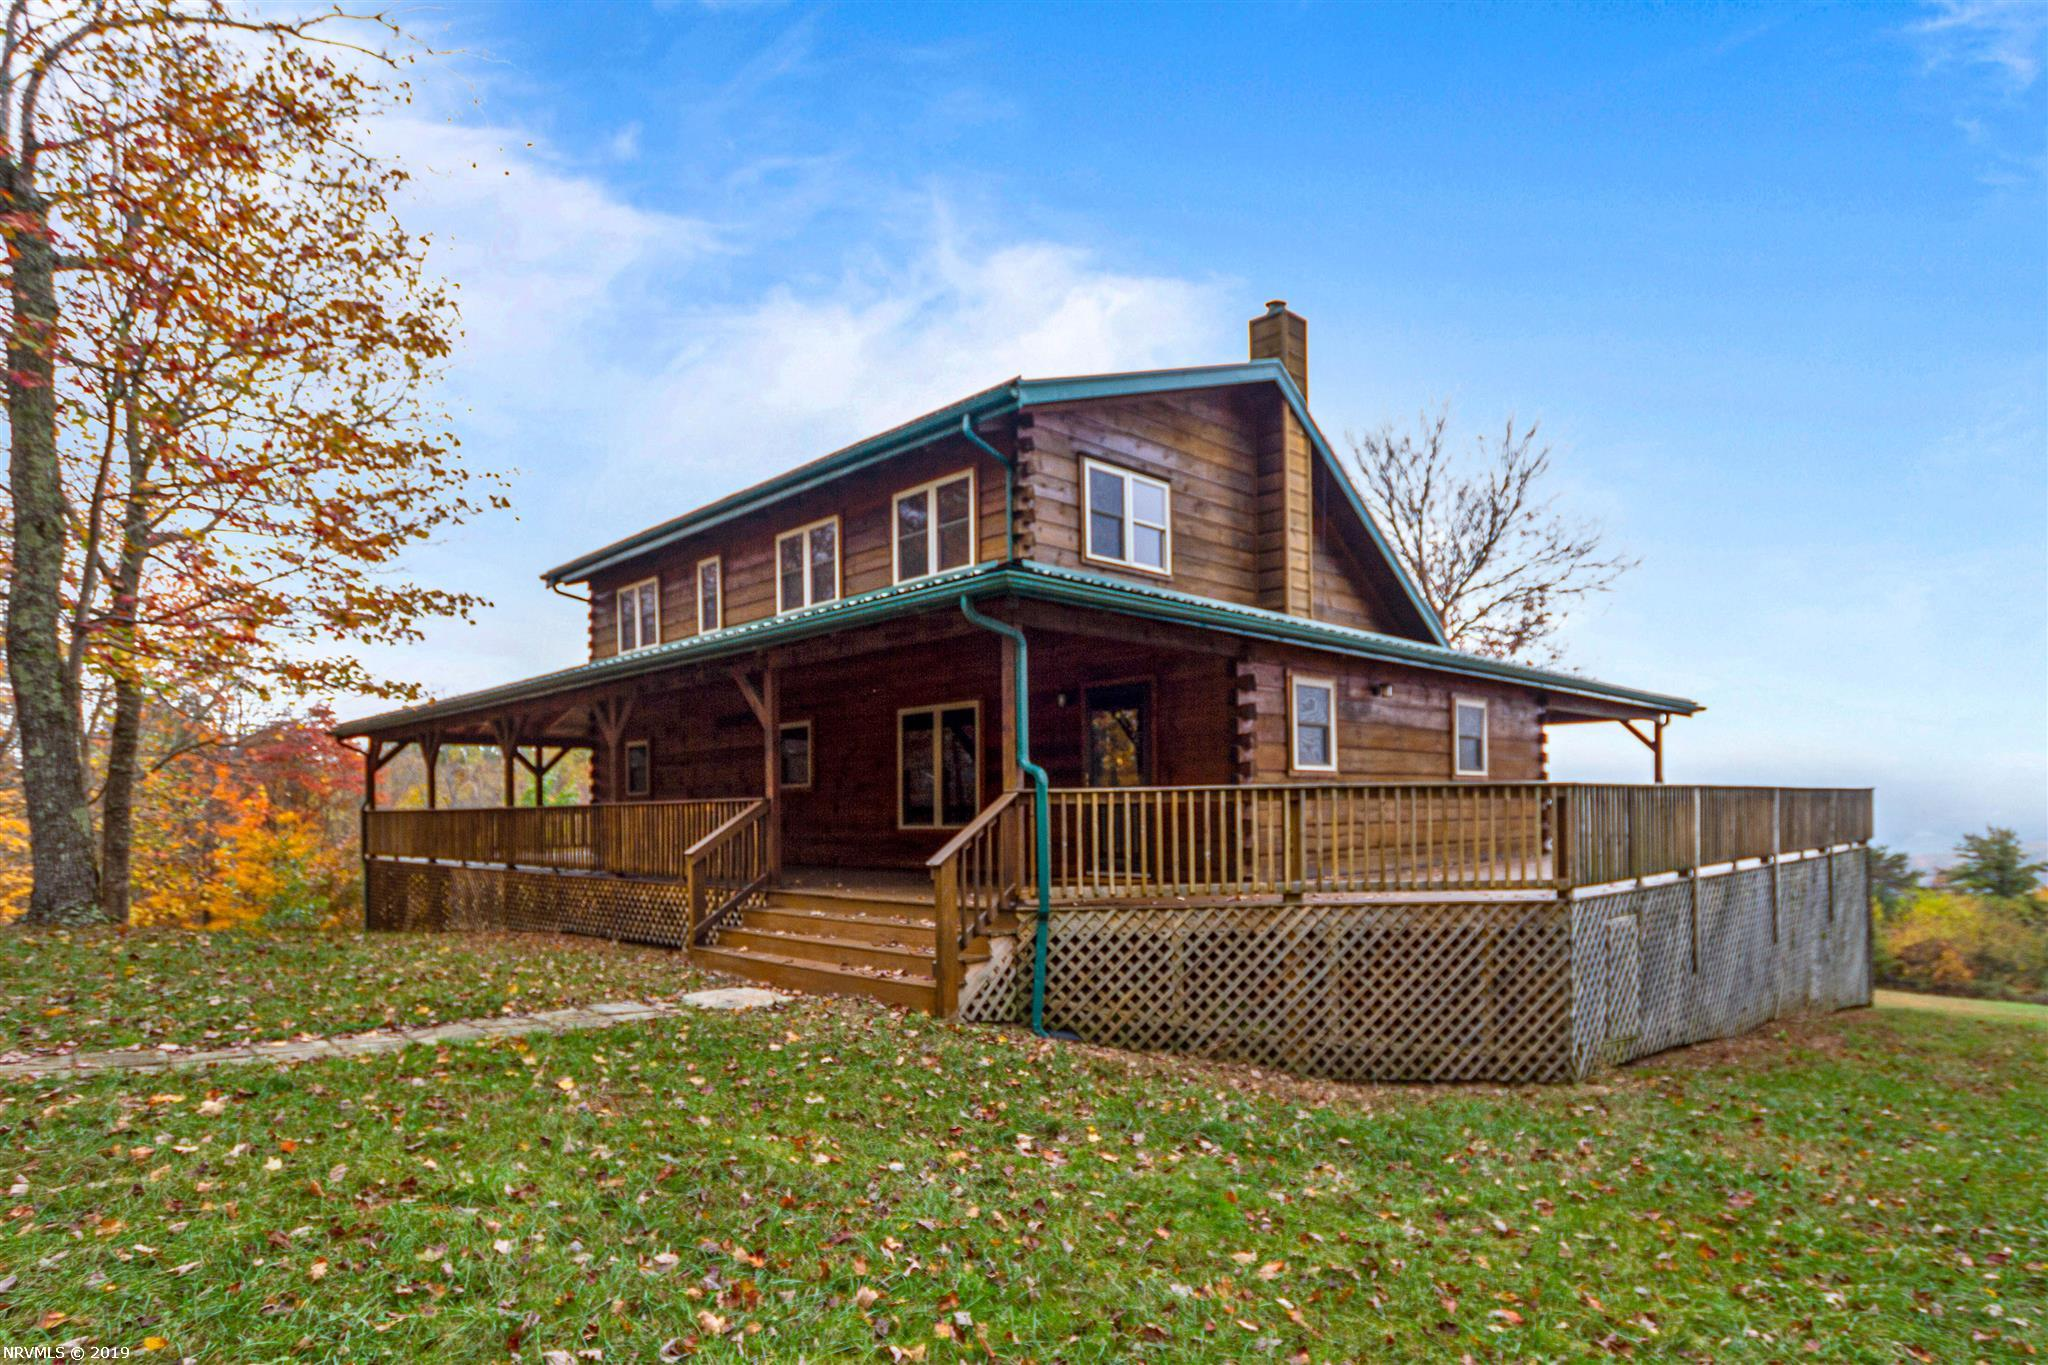 Nothing else in the New River Valley compares to this impressive 17 Room Log Home on 88 Acres! This home built in 2008 by the owner is a culmination of A Custom Built Amish Log Home to fit the historic and natural aspects of its surroundings. This totally 'off the grid' home w/Privacy is located midway in the New River Valley. Its architectural features include Exposed Beams, Cathedral Ceilings, Custom Cabinets & Door Handles & 4 Sided Decks to enjoy the Majestic Mountain Views! The total under roof square footage is 3,754 square feet. There are 4 bedrooms, 3.5 Baths  arranged around a massive great room with huge kitchen w/expansive Wood counters, Center Island,Gas Range, Ref, DW & MW. No problem if electric goes off - Outdoor Wood Furnace connected to Heat Plus Wood Stove in Living Room. Zoned agricultural for Livestock - Horses, Etc. Barn Shed of 27.2 x 25.08 w/Storage Room 25.08 x 12.75- Floored, 2 Windows & Hole for Flue.Like Decks? -1900+ SF of 4 sided Decks-covered & open.